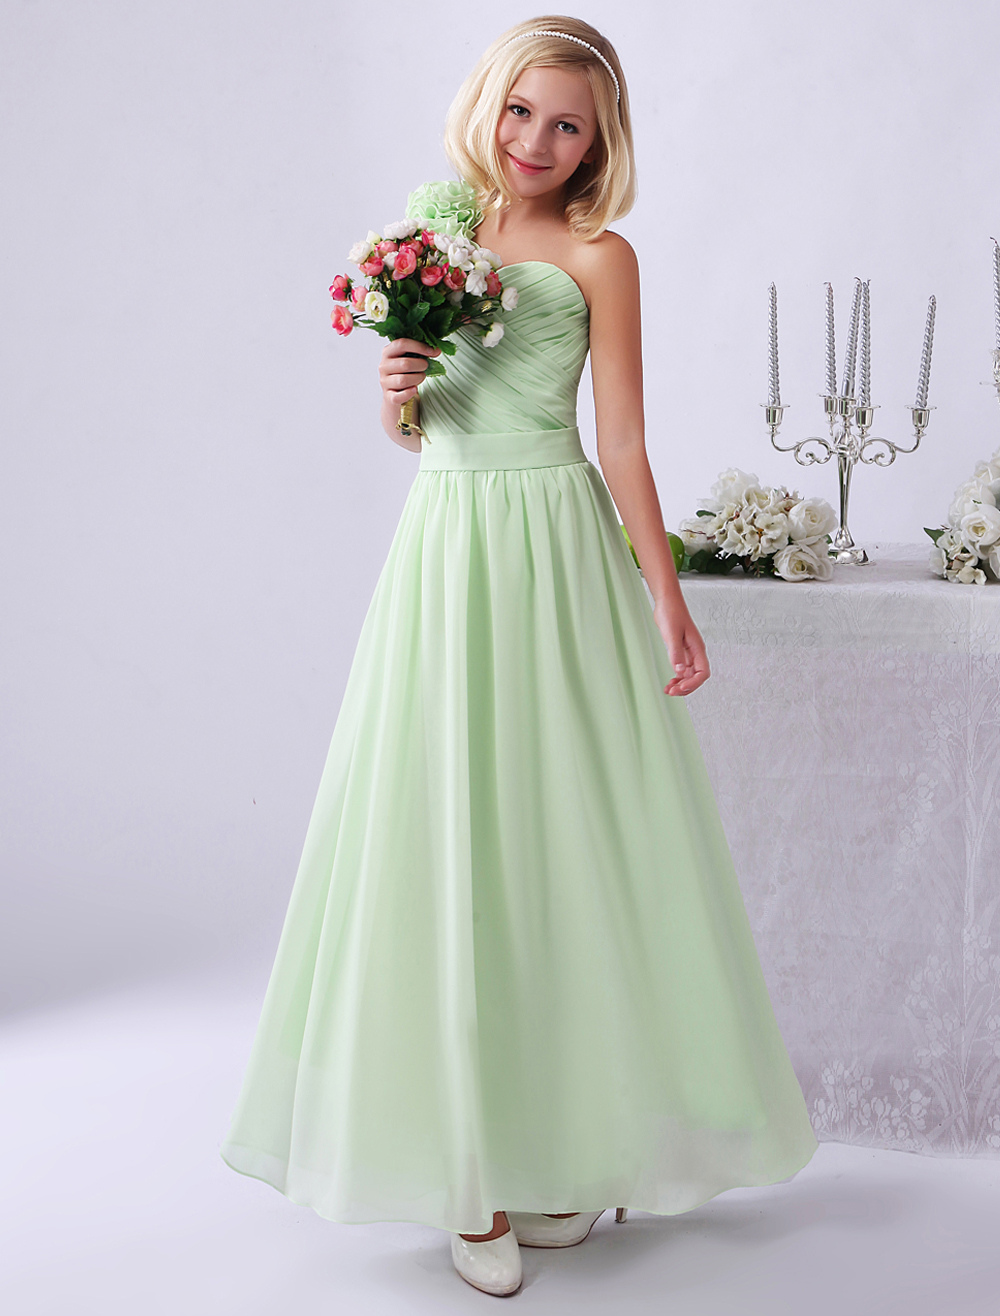 Junior Bridesmaid Dresses Light Green One Shoulder Flowers Chiffon Long Flower Girl Dress